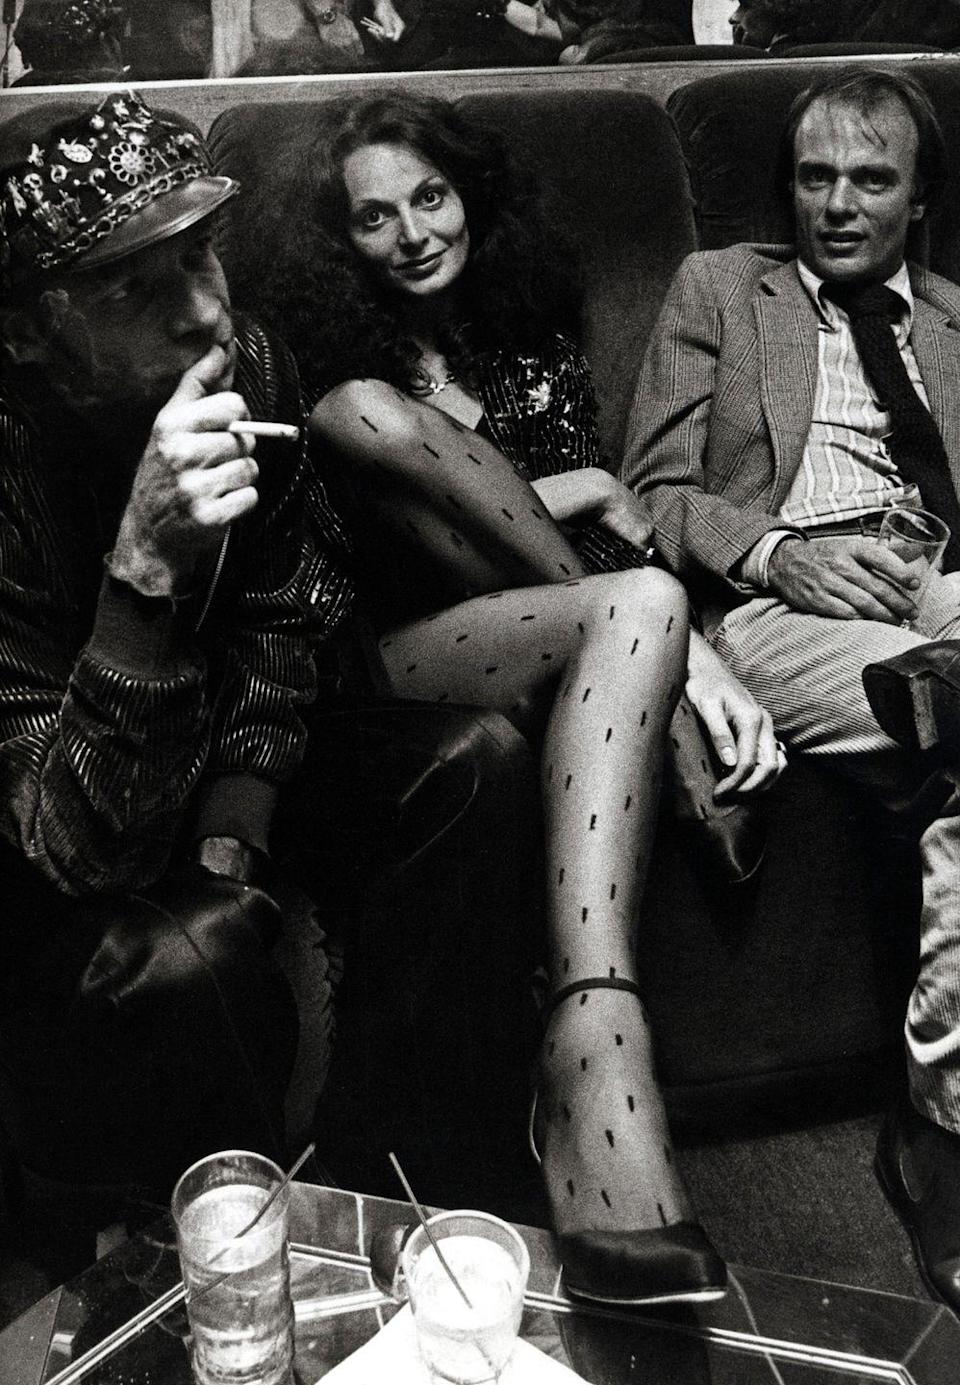 "<p>Diane Von Furstenberg lounges on the couches at Studio 54 in 1978, alongside her friend, Ara Gallant. She was at the nightclub for the launch of her husband Egor Von Furstenberg's book, <em><a href=""https://www.amazon.com/Power-Look-Egon-von-Furstenberg/dp/0030204569"" rel=""nofollow noopener"" target=""_blank"" data-ylk=""slk:The Power Look"" class=""link rapid-noclick-resp"">The Power Look</a></em>. </p>"